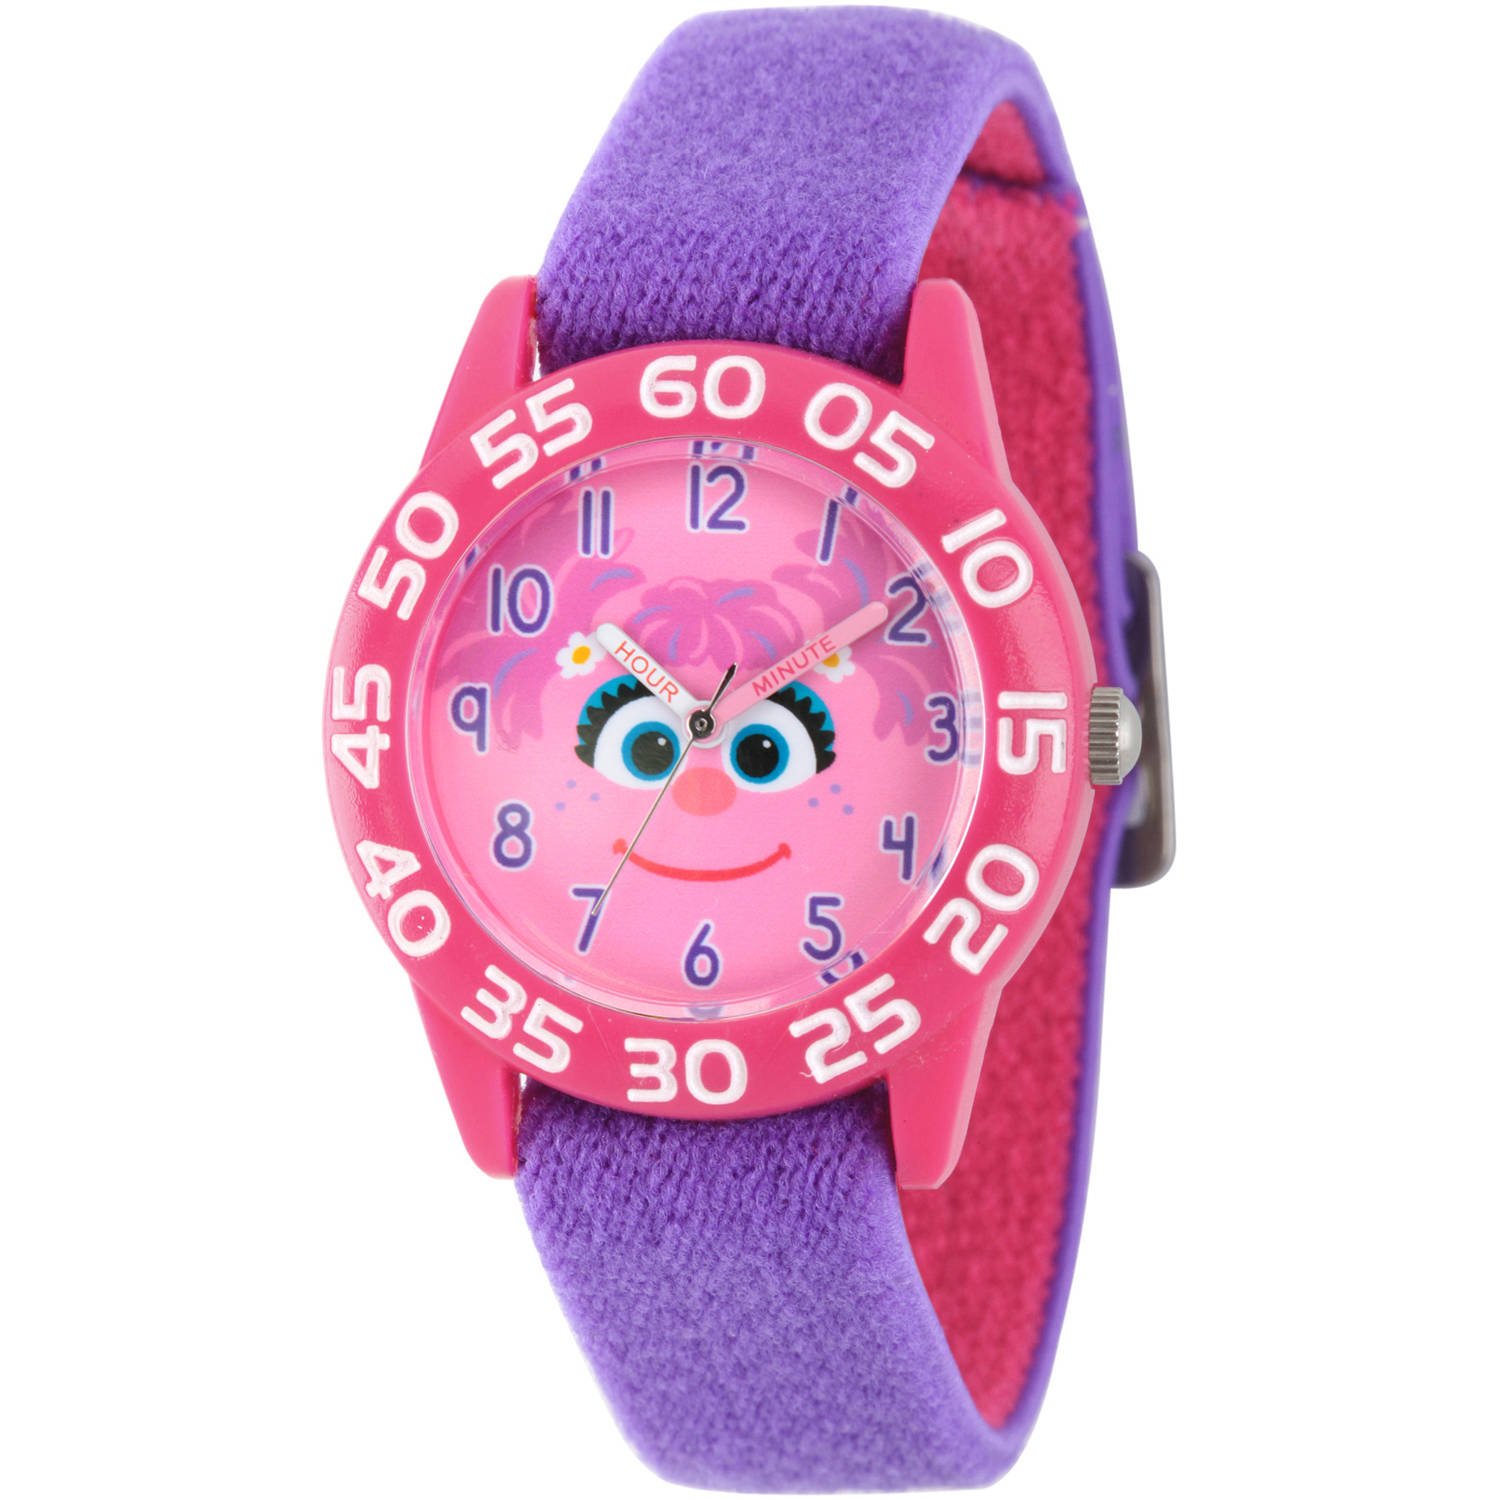 Sesame Street Girls' Pink Plastic Time Teacher Watch, Reversible Purple and Pink Nylon Strap